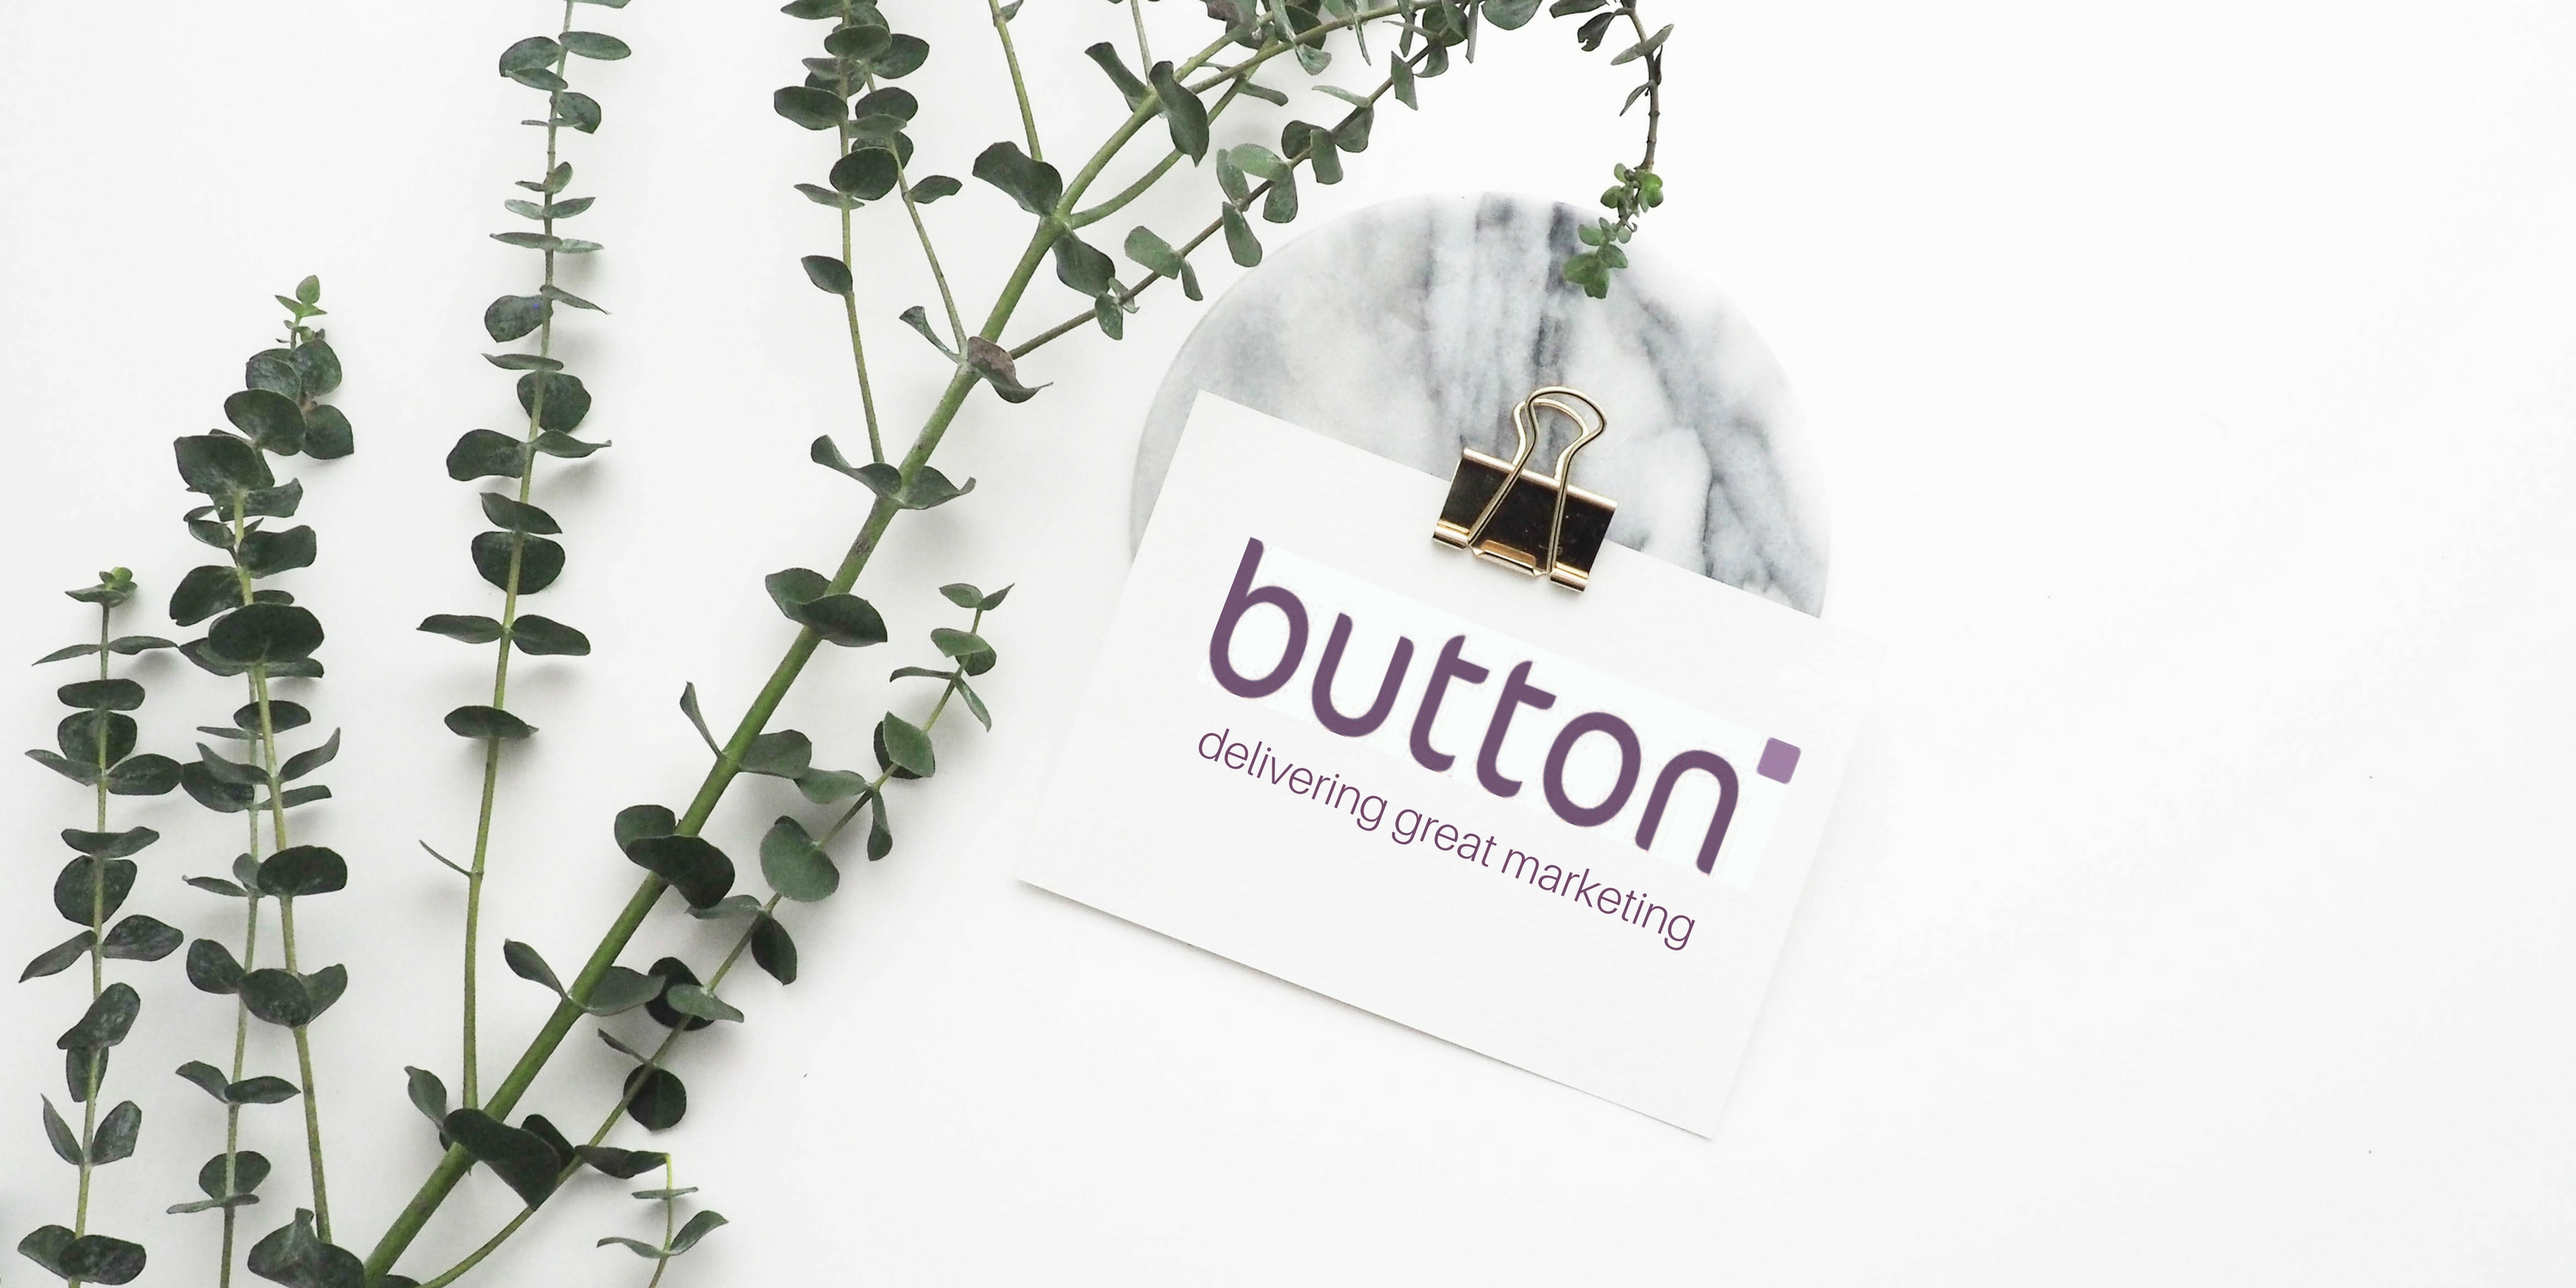 Button Marketing - delivering great marketing